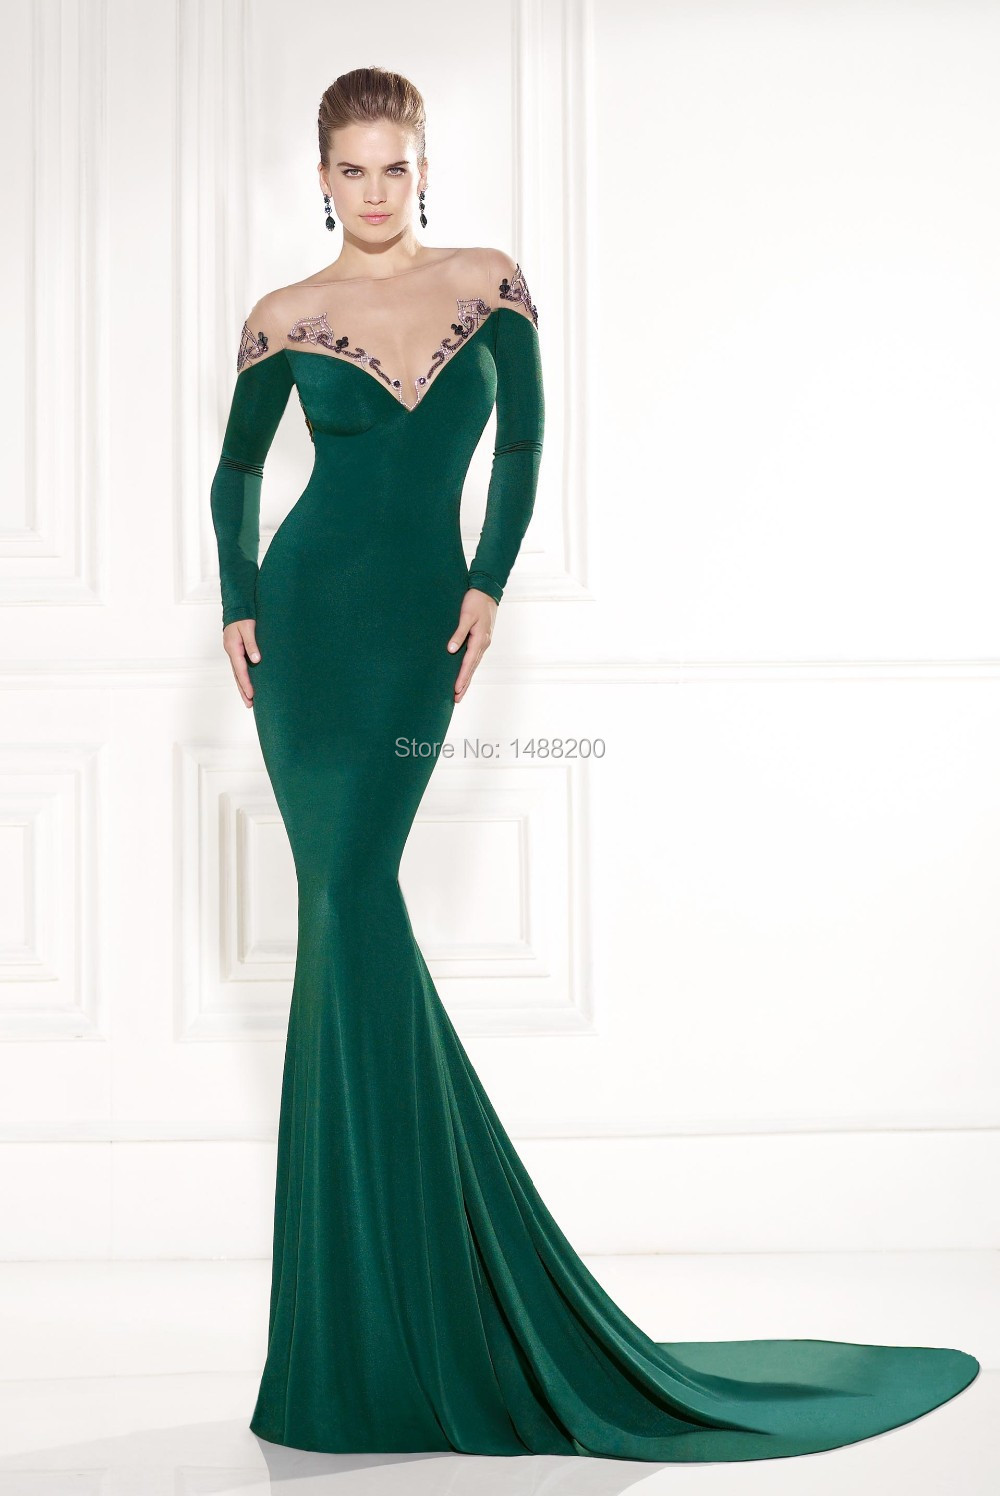 Compare Prices on Emerald Green Dress- Online Shopping/Buy Low...